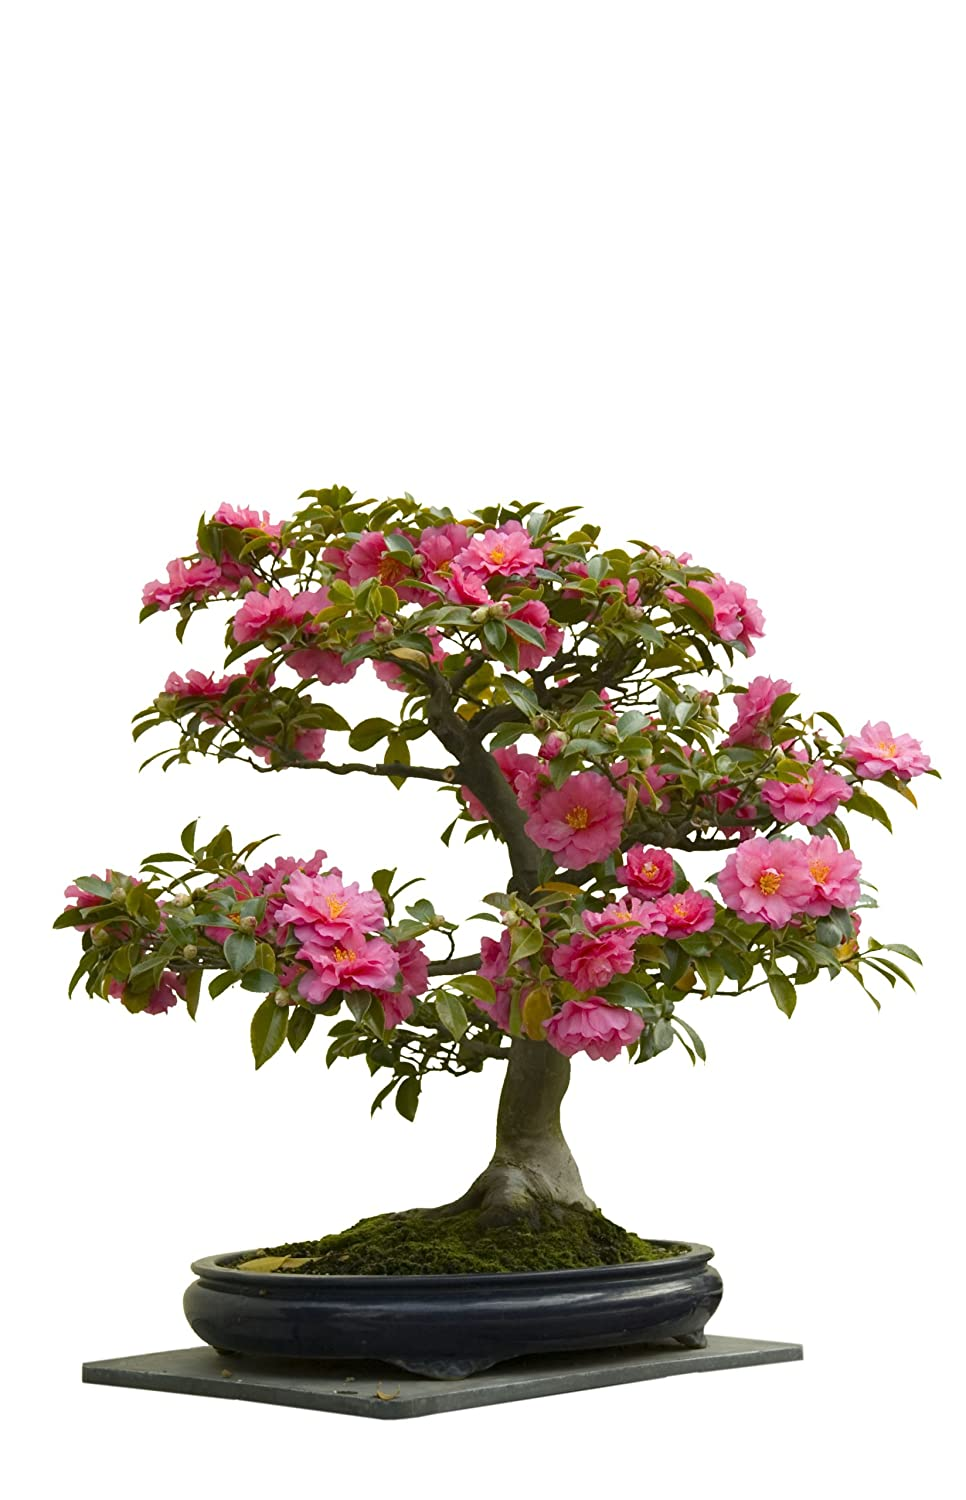 Seedeo Japanese Camellia Camellia Japonica Indoor Bonsai Pink